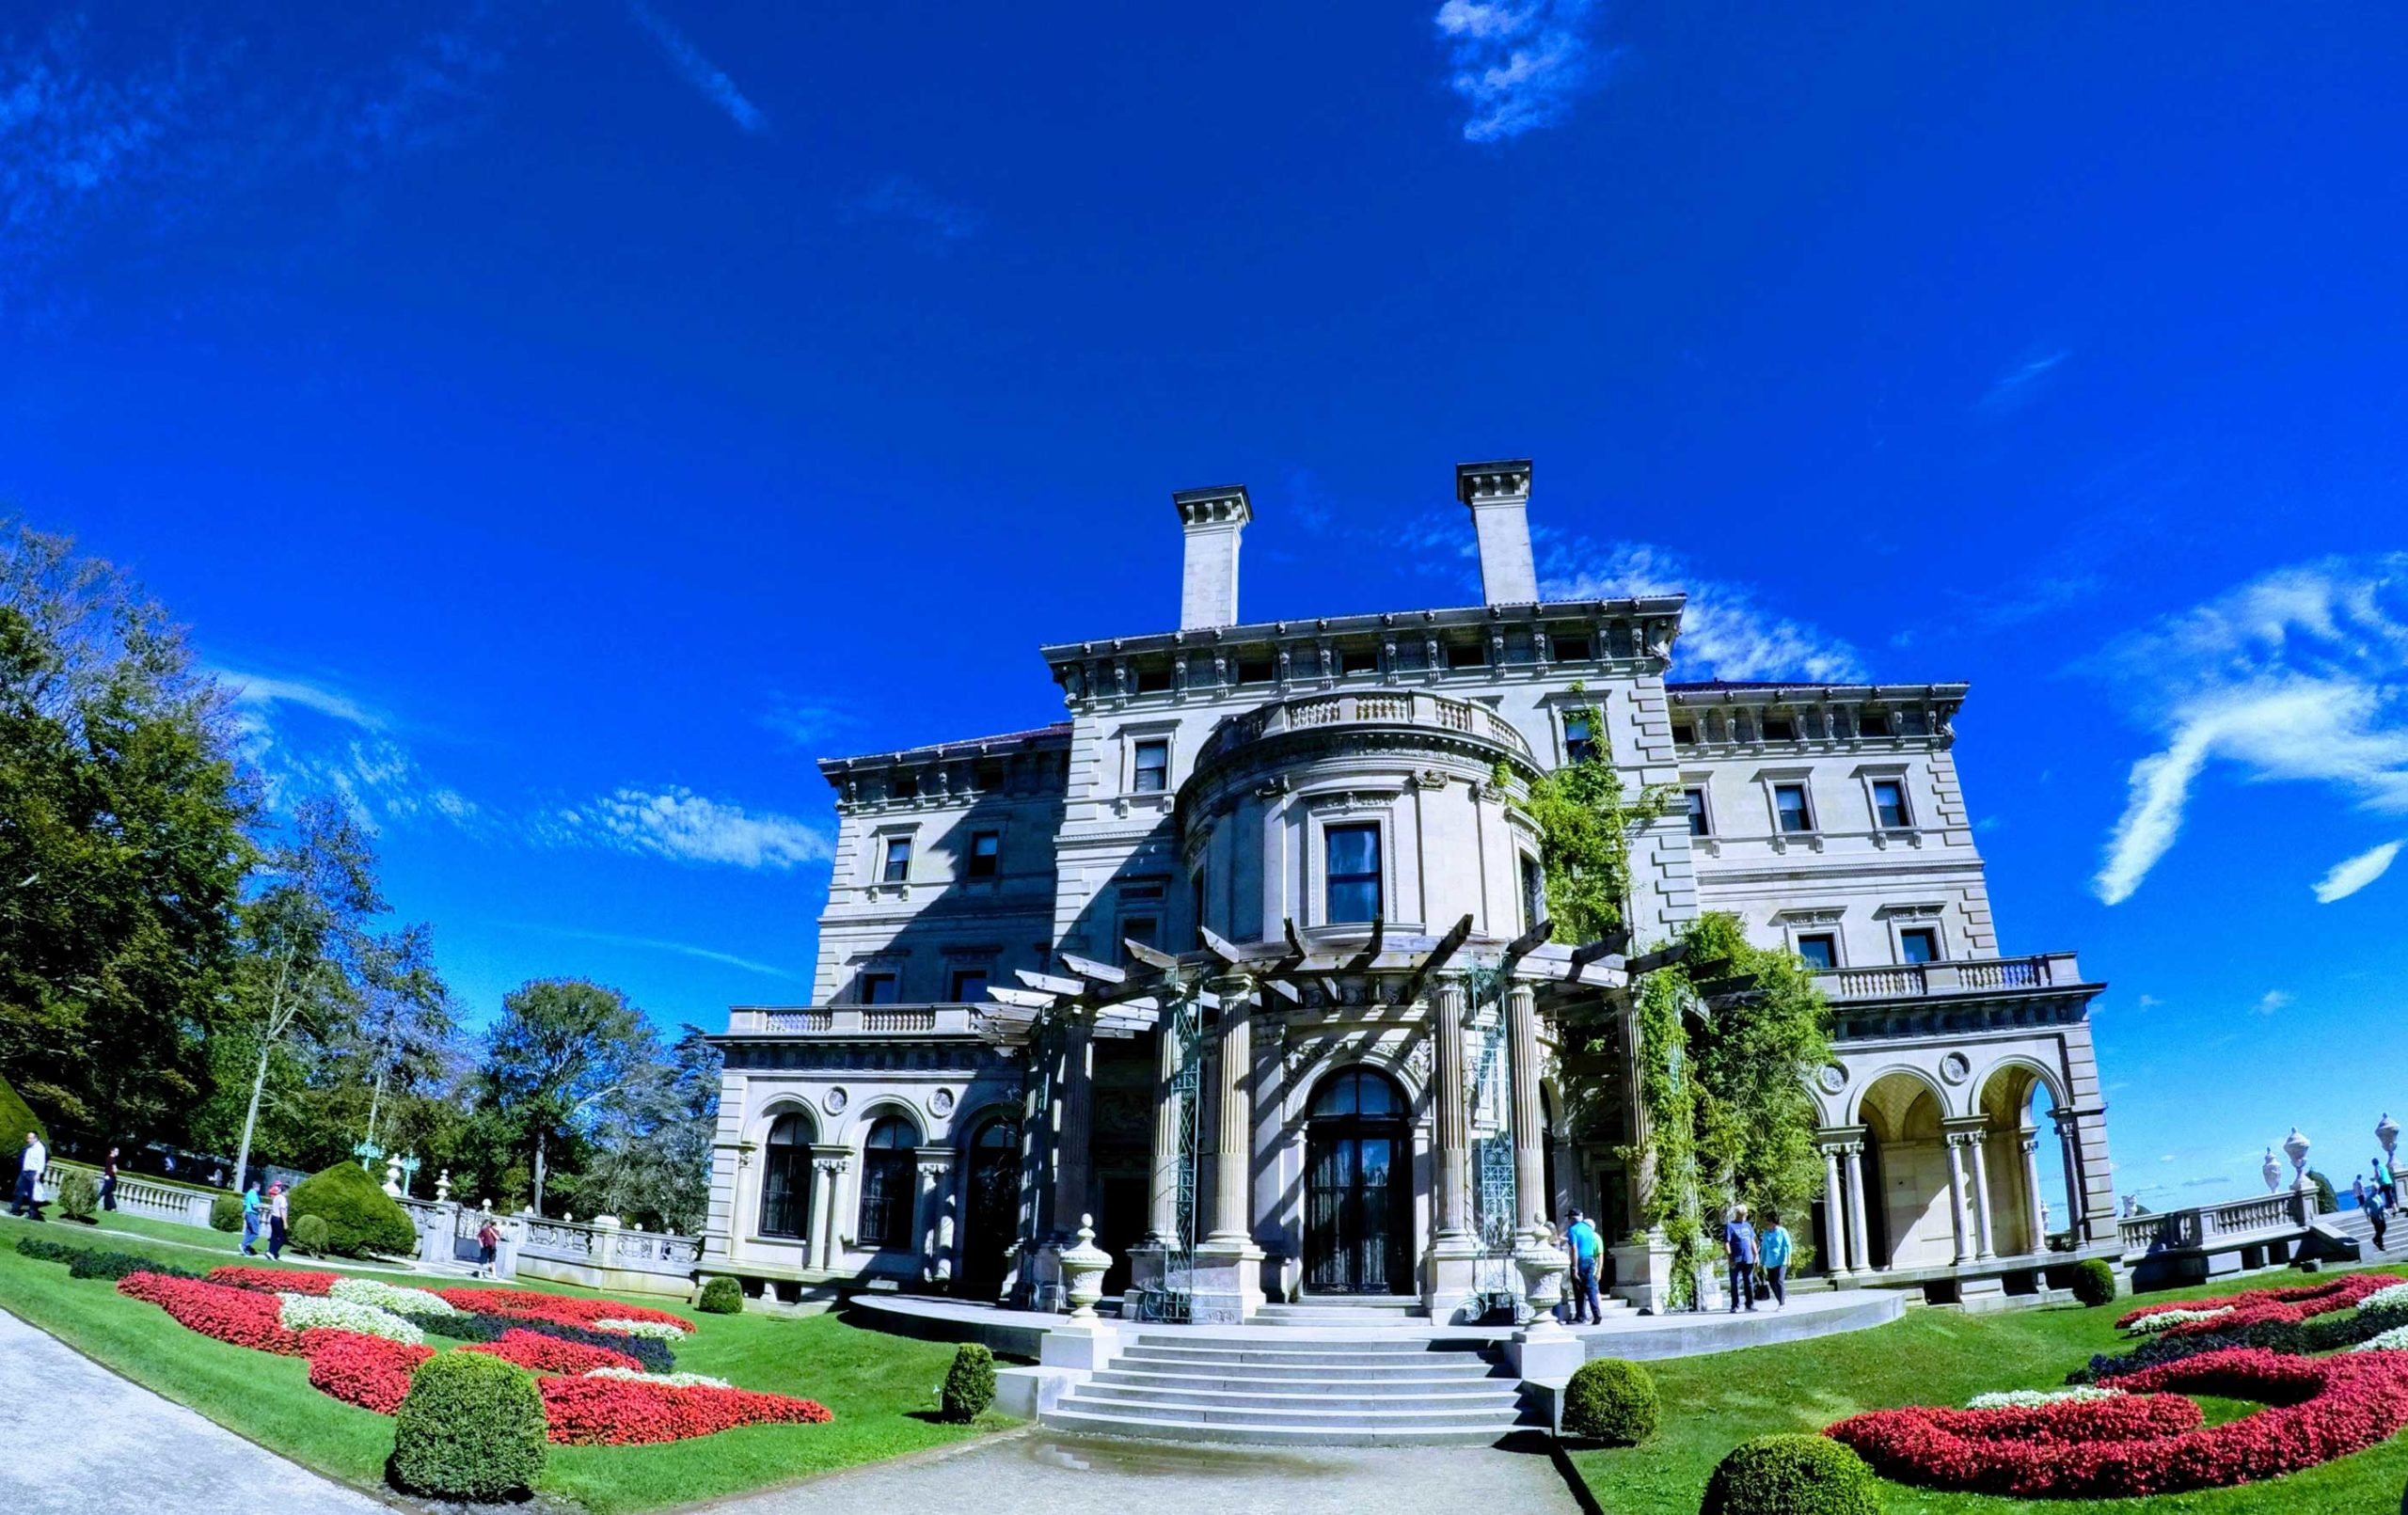 Photograph of a mansion in Newport, Rhode Island